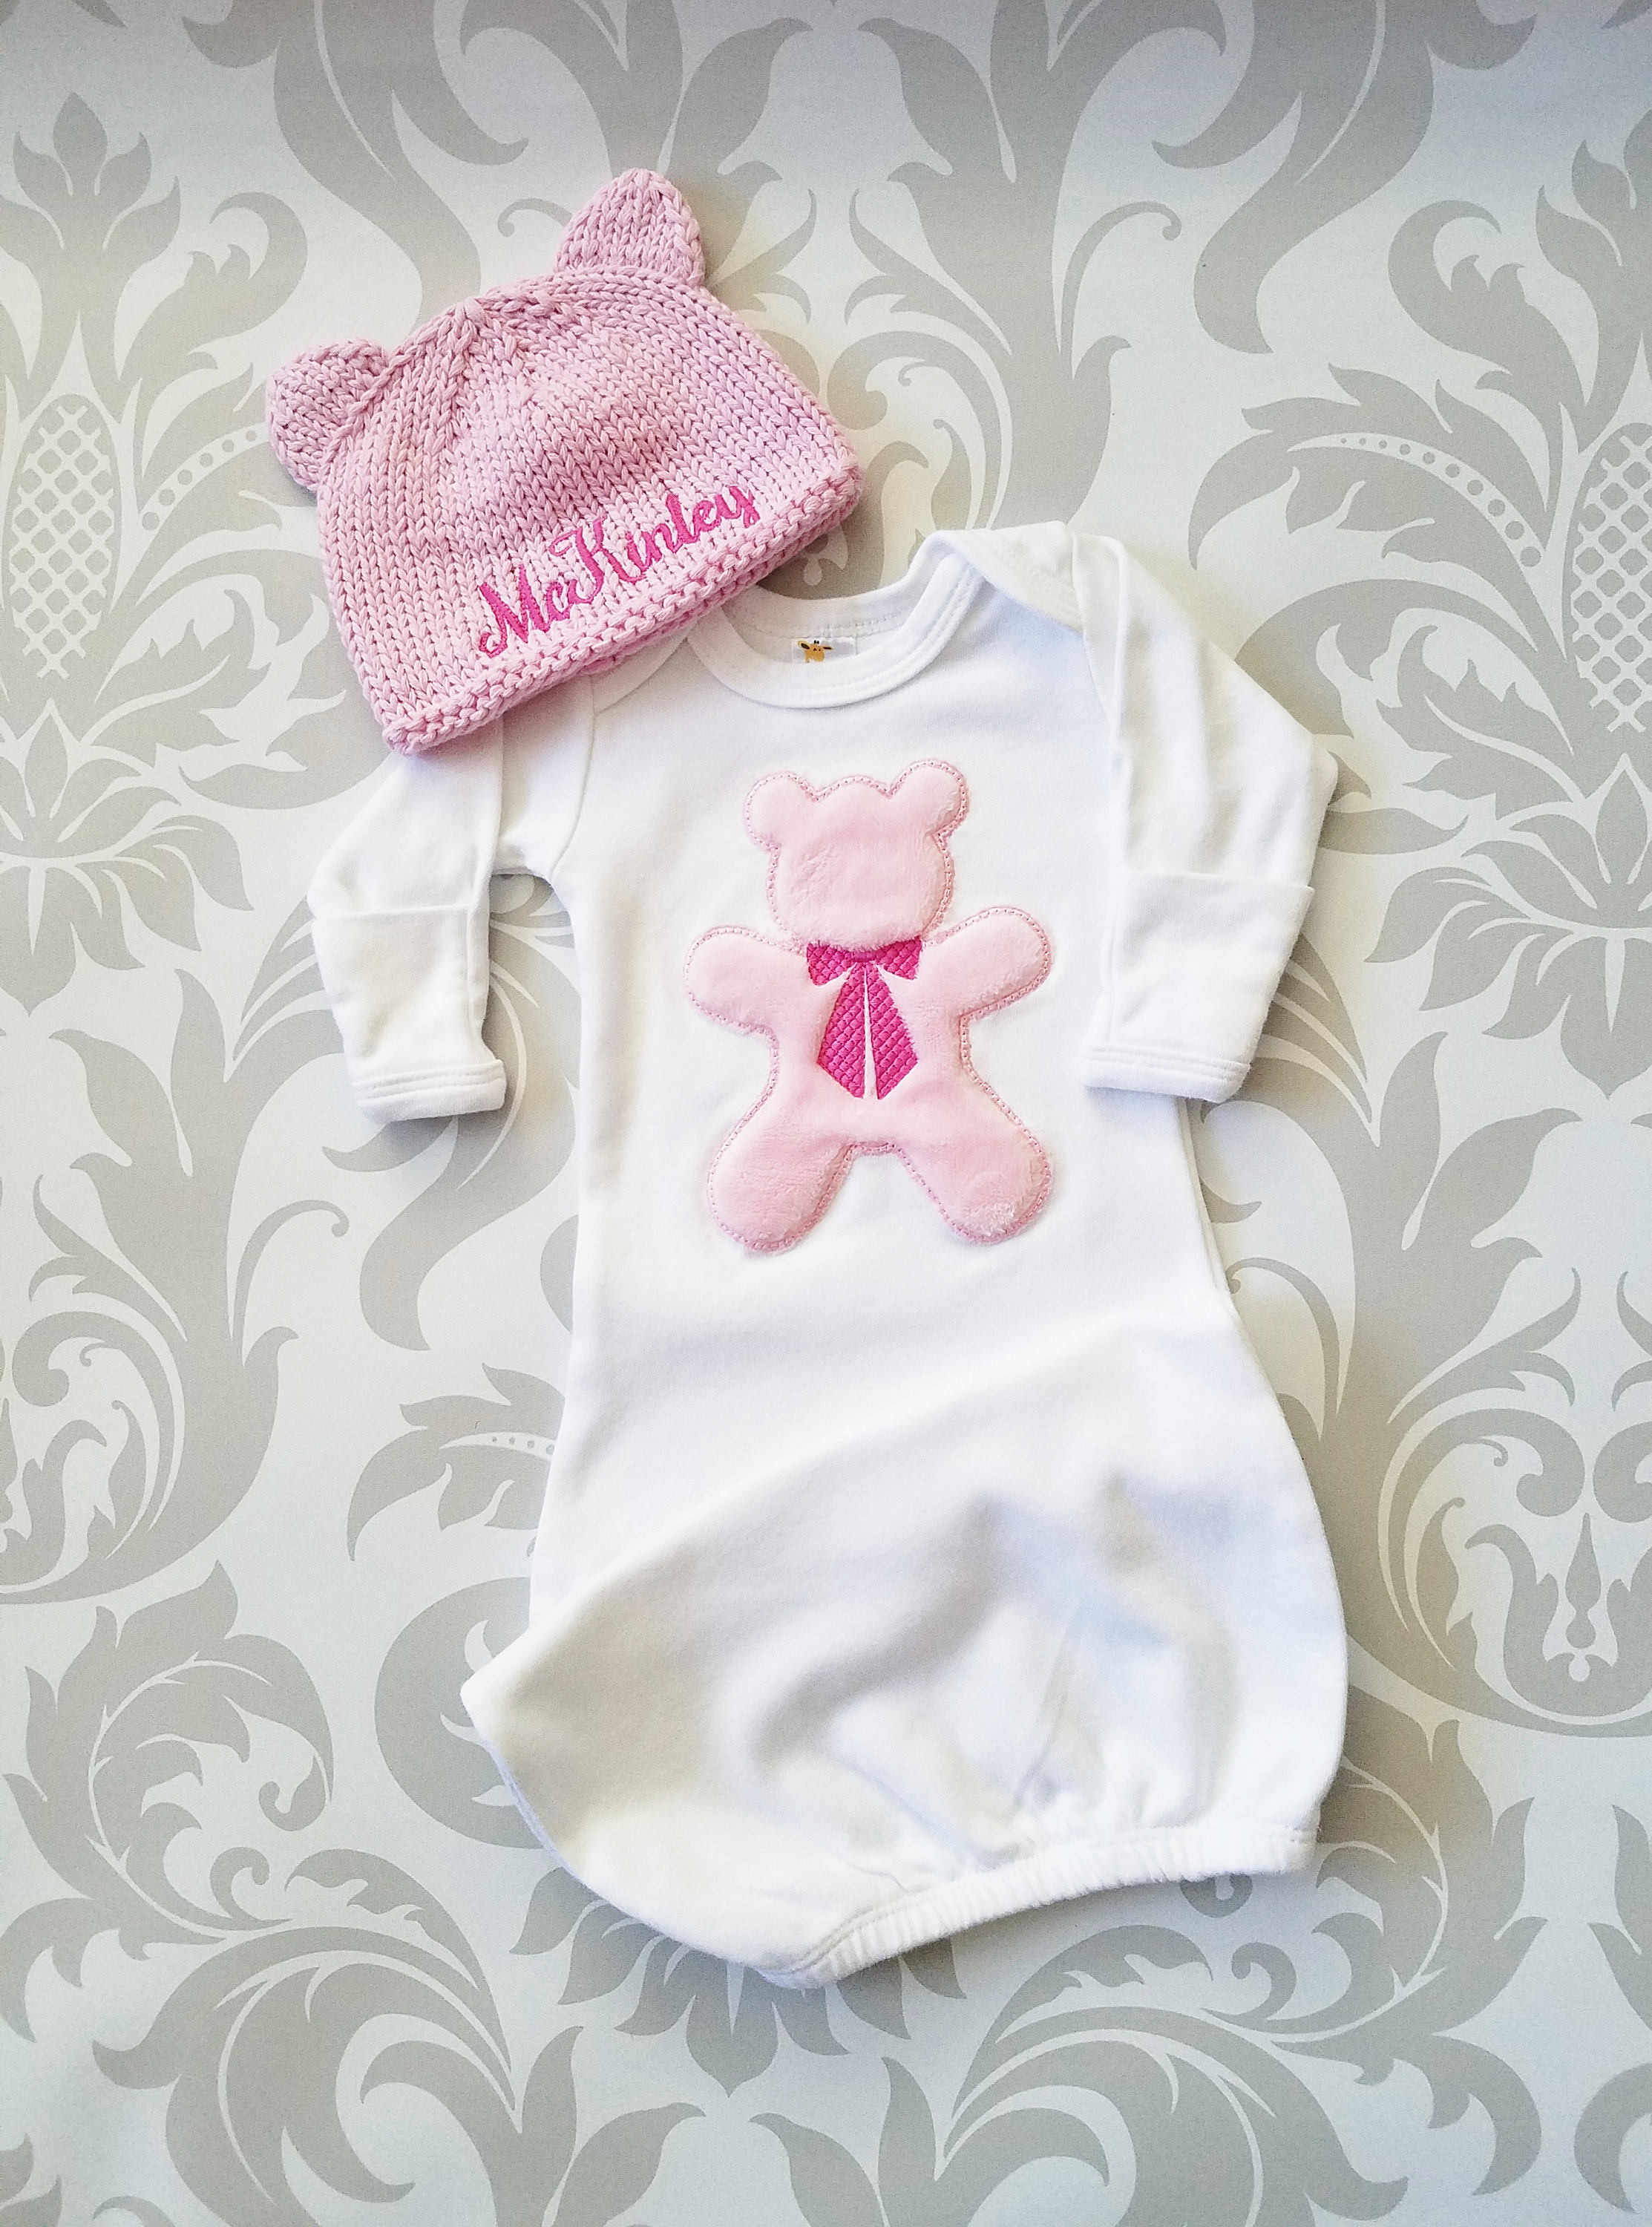 d2a5a3e27 Baby Girl Gown Baby Girl Take Home Outfit Newborn Baby Girl Personalized  Hat Baby Girl Gift